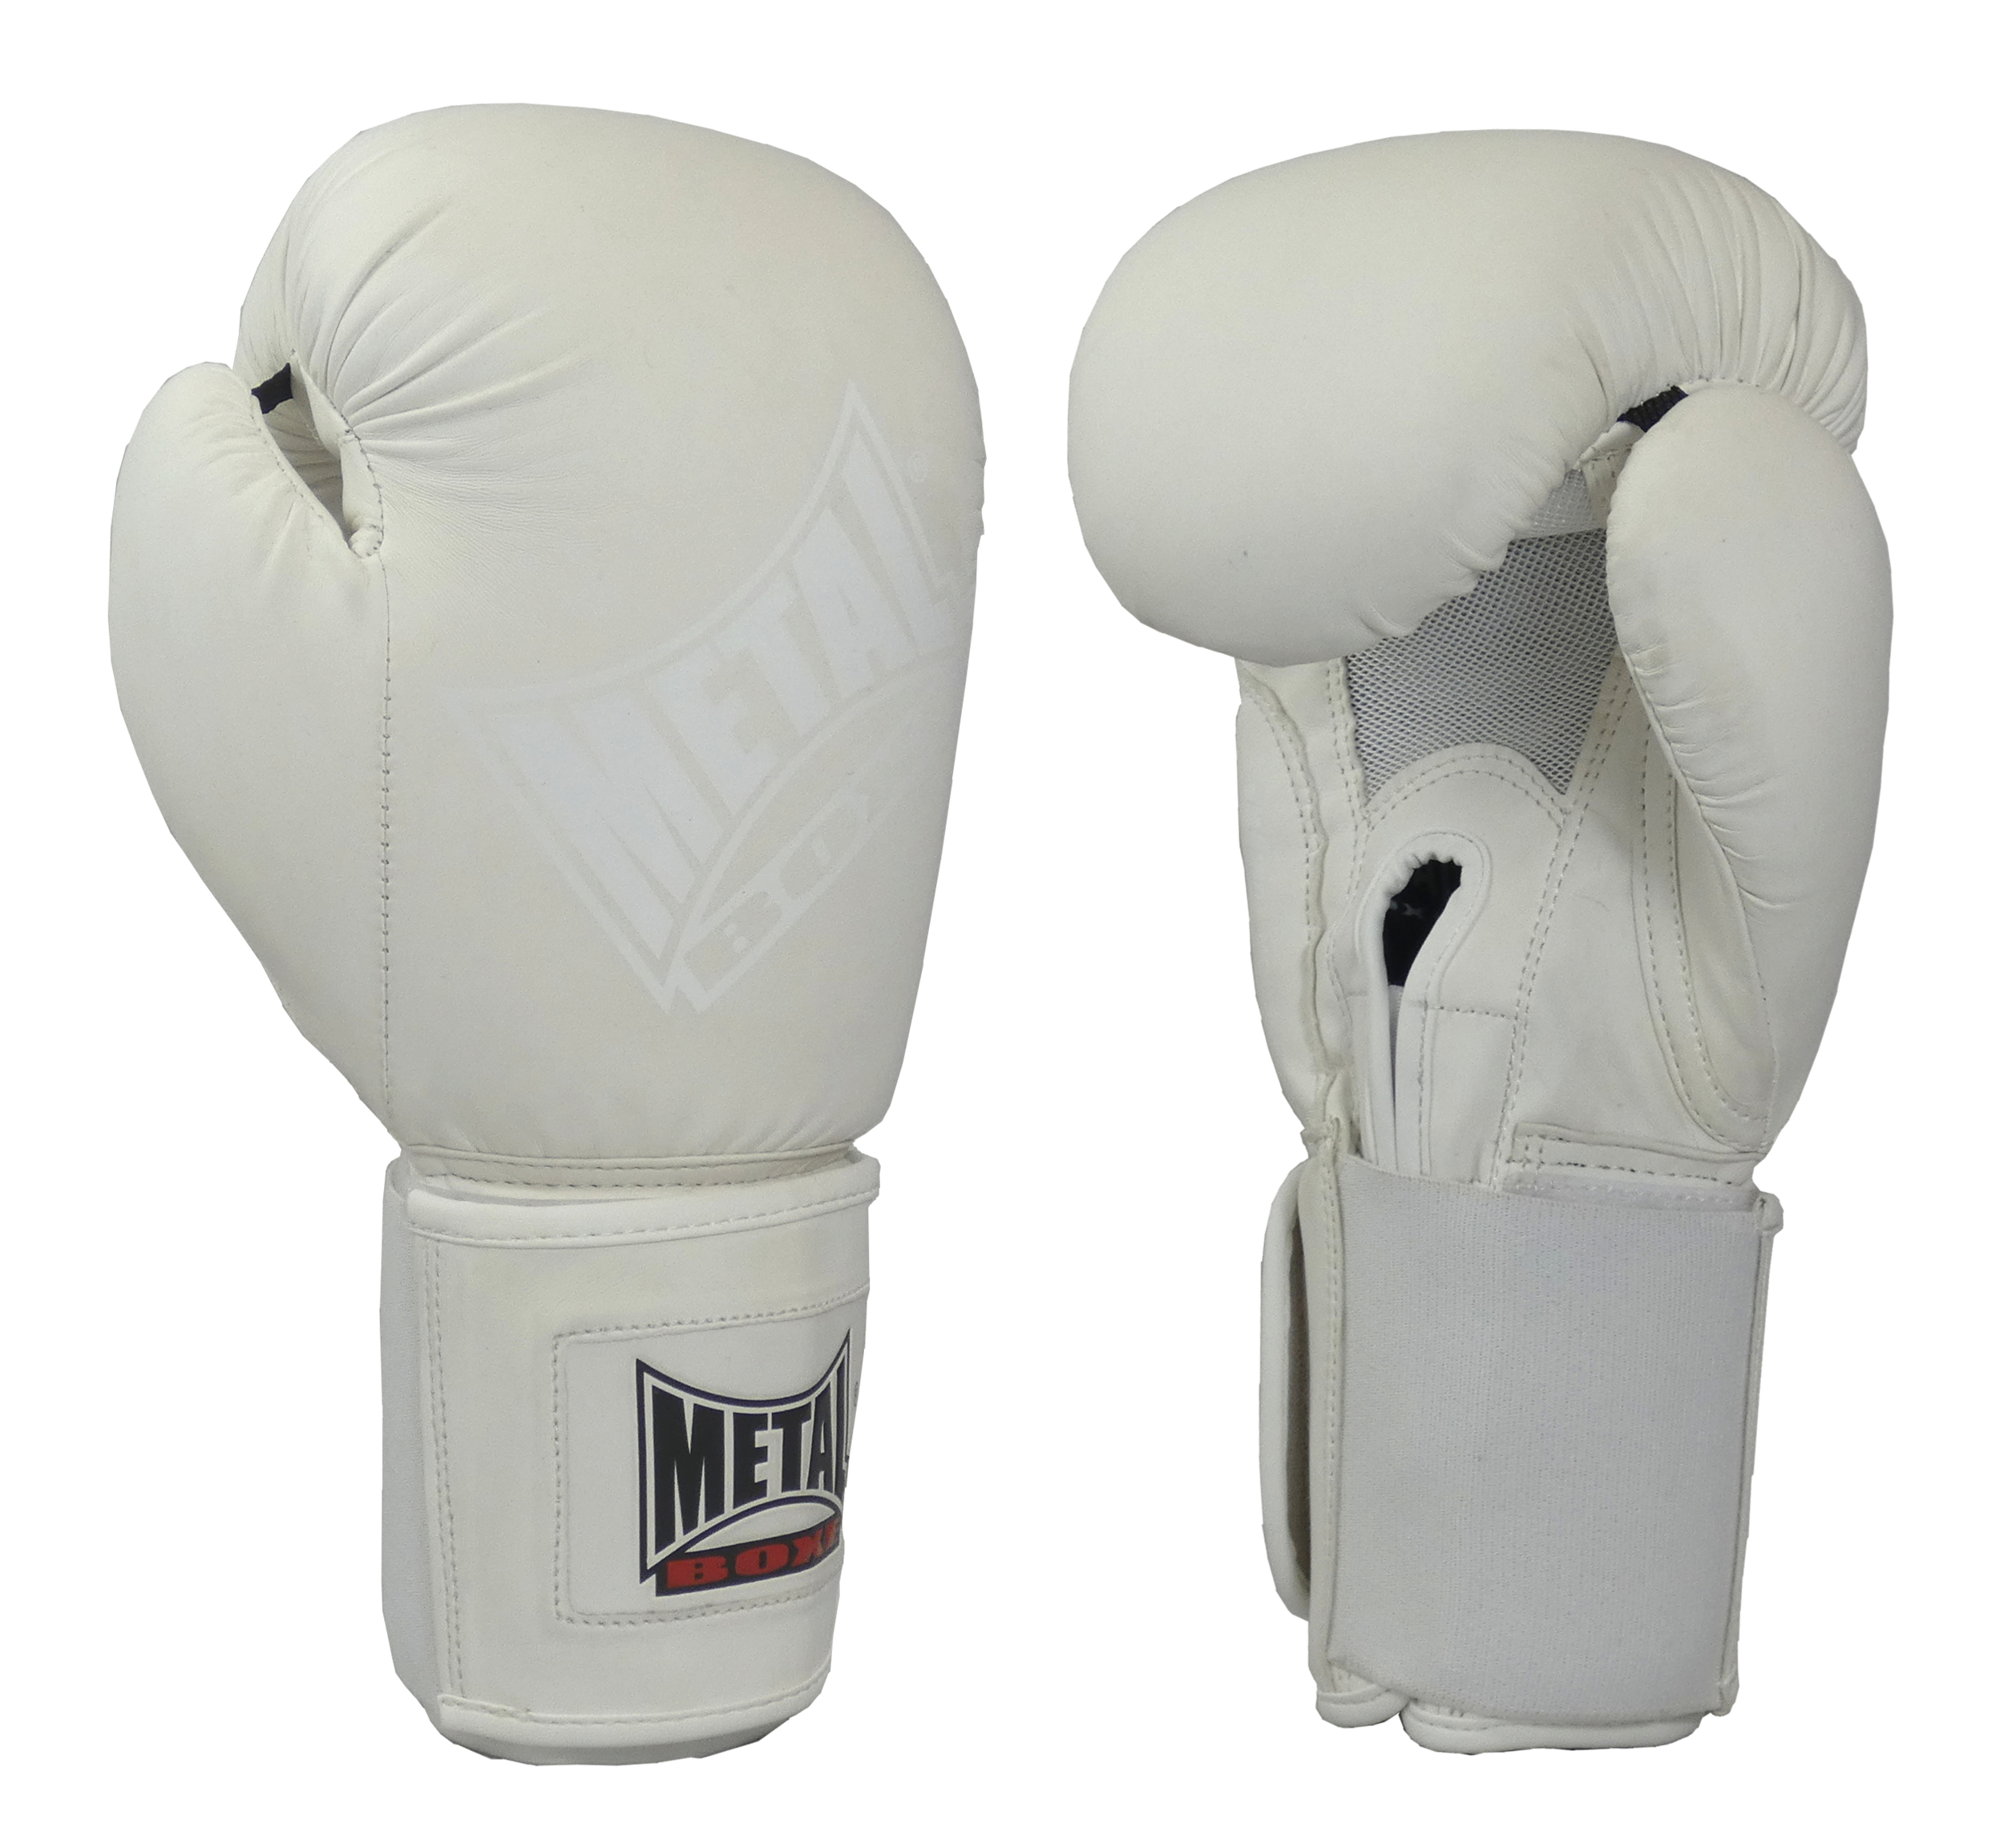 Gants de boxe Métal boxe White light